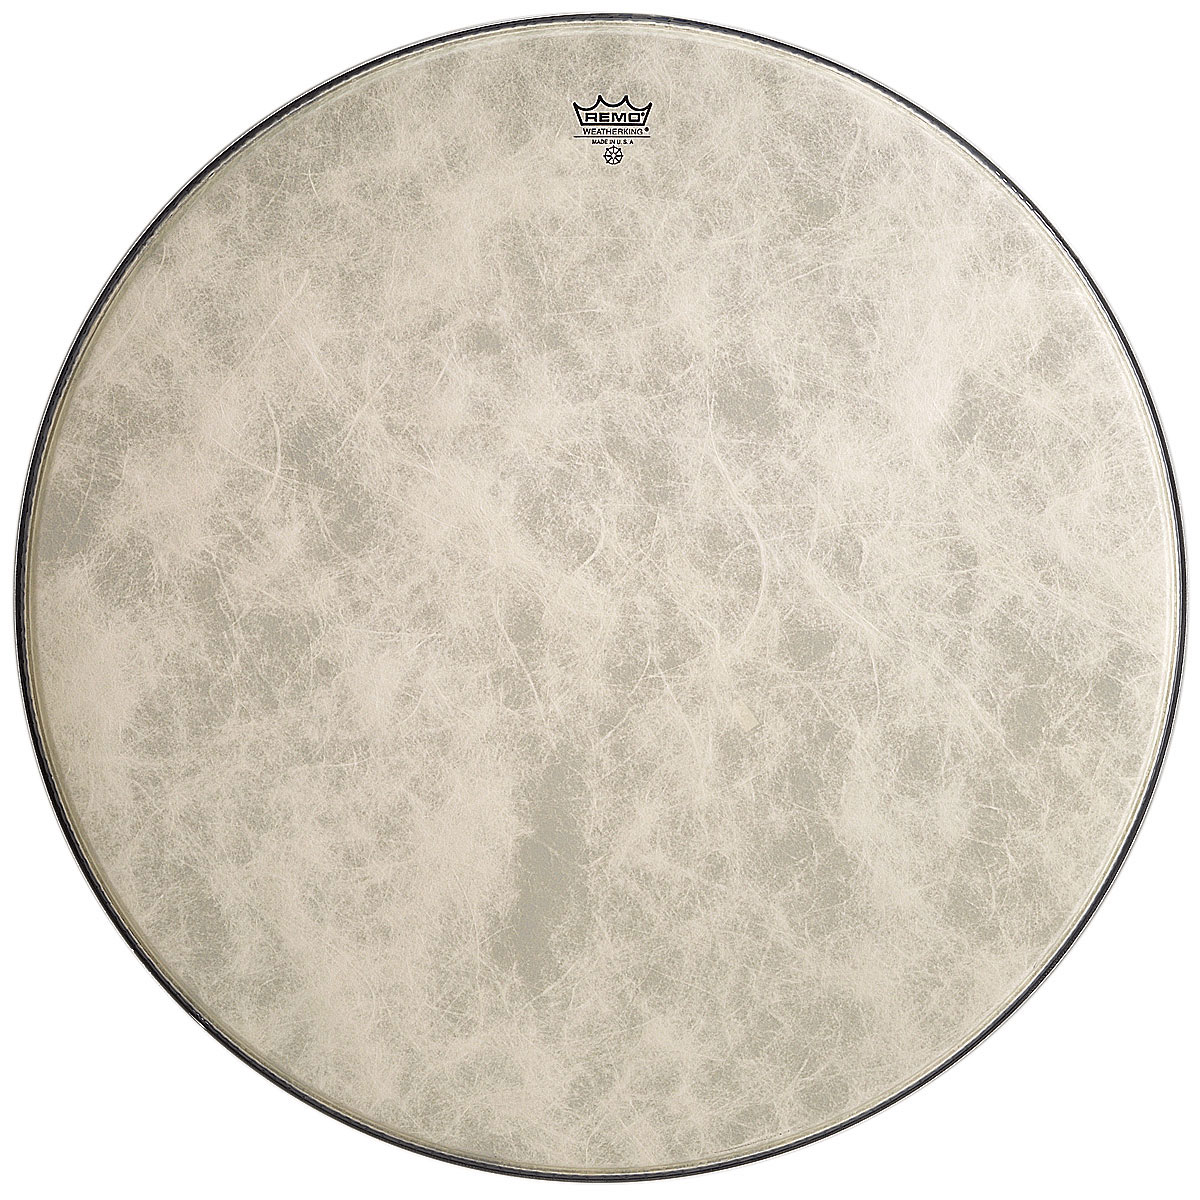 "Remo 28"" Fiberskyn Heavy Concert Bass Drum Head"